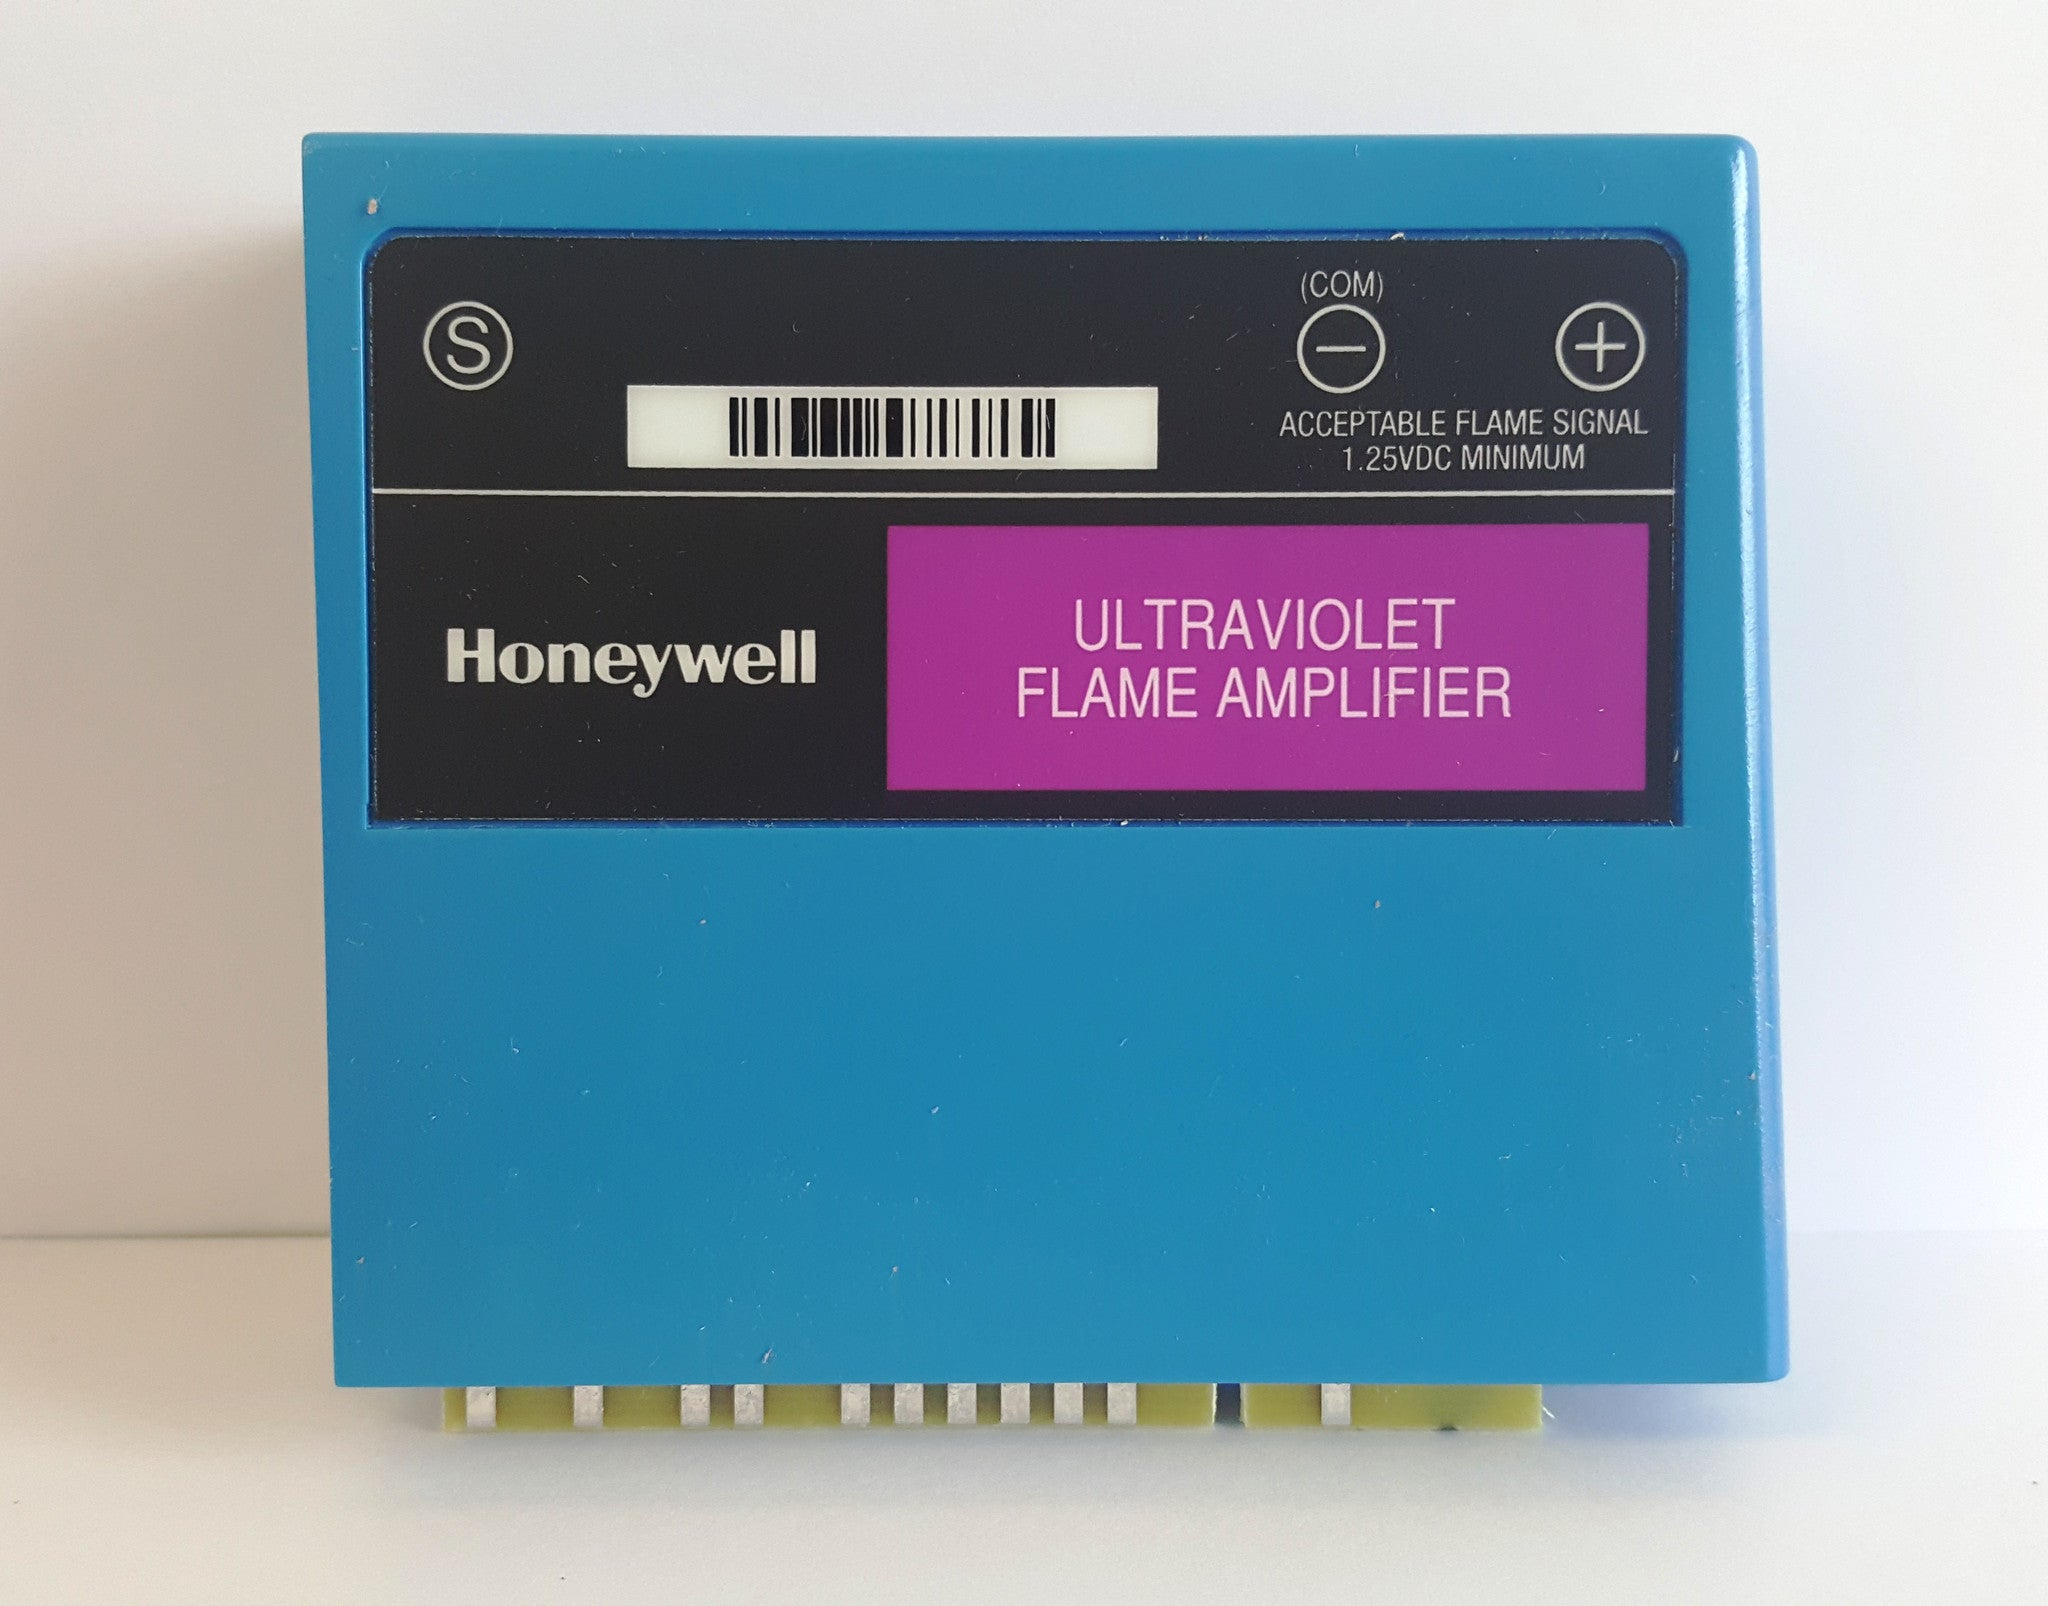 20160308_124228?v=1492114099 r7849a1023 ultraviolet flame amplifier nwim boiler parts honeywell 7800 wiring diagram at mifinder.co